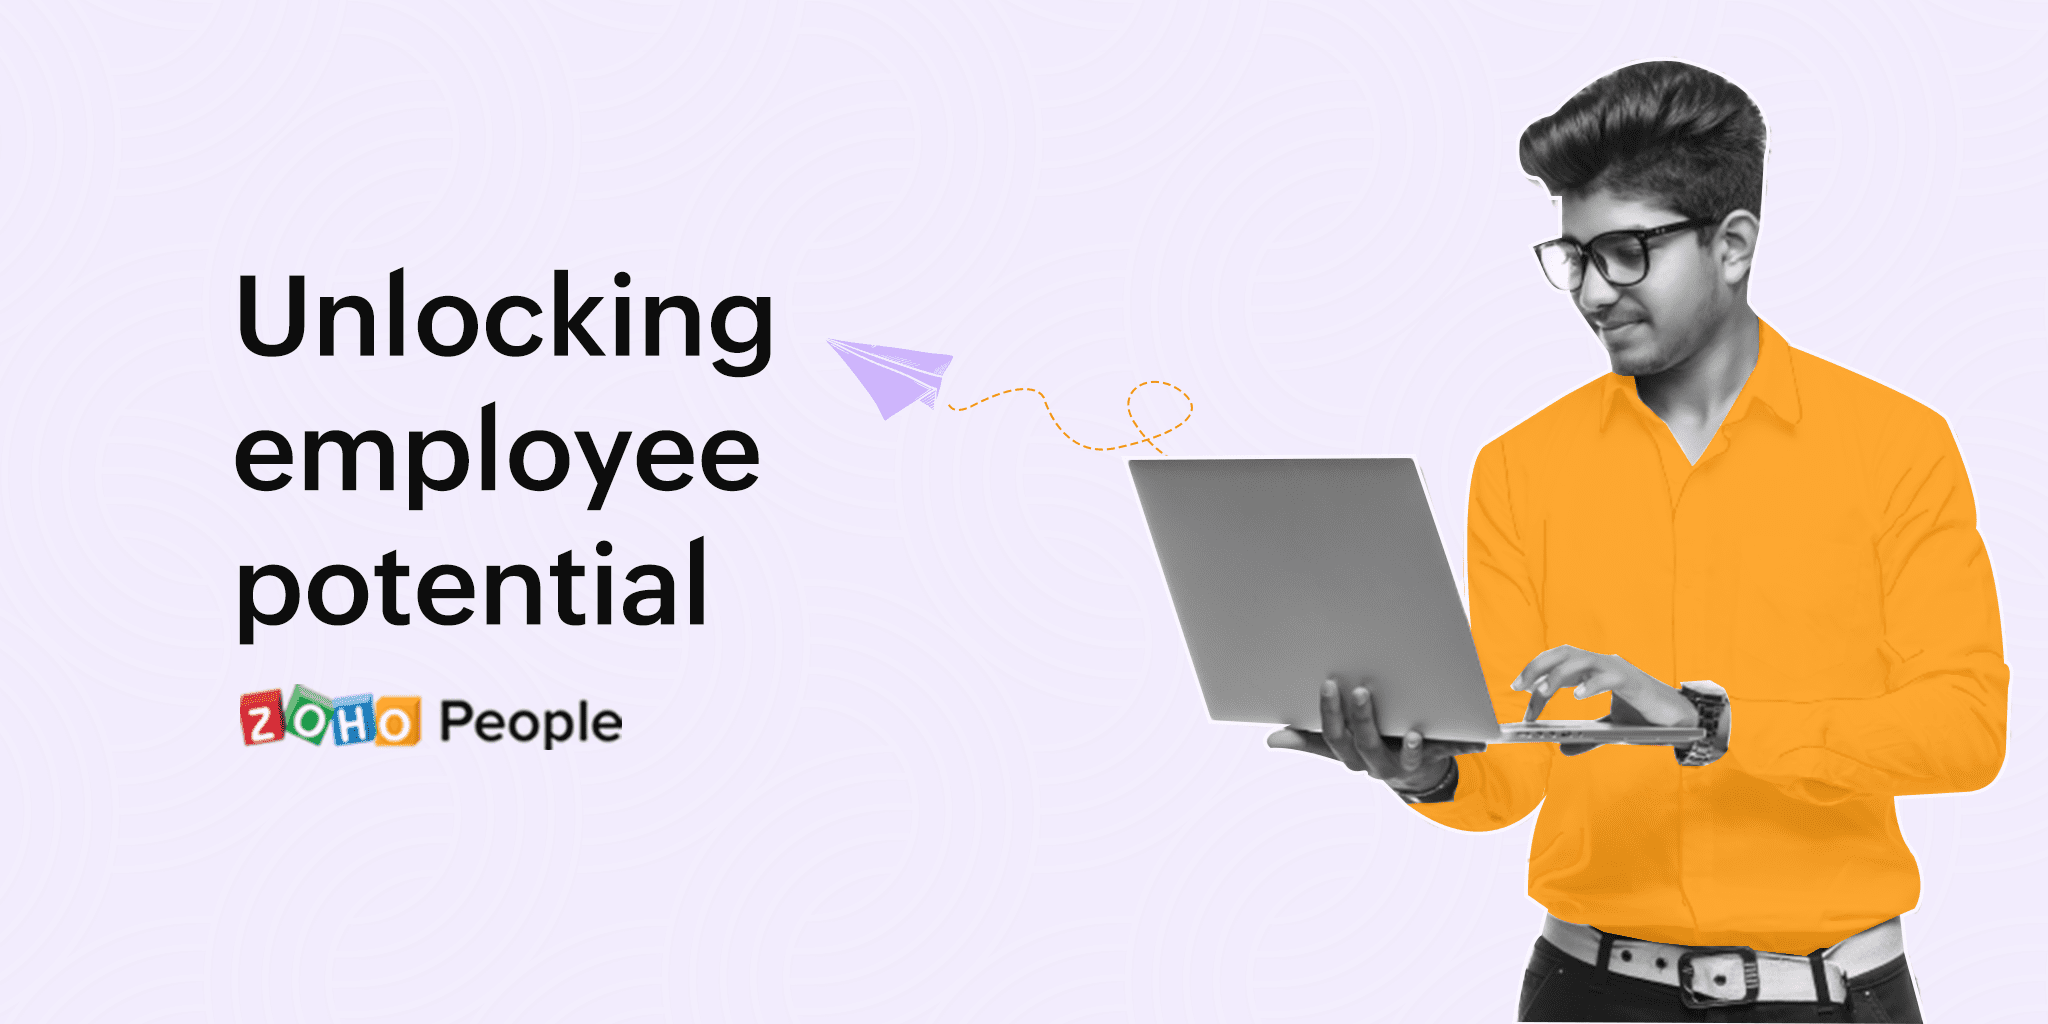 5 useful tips for unlocking employee potential